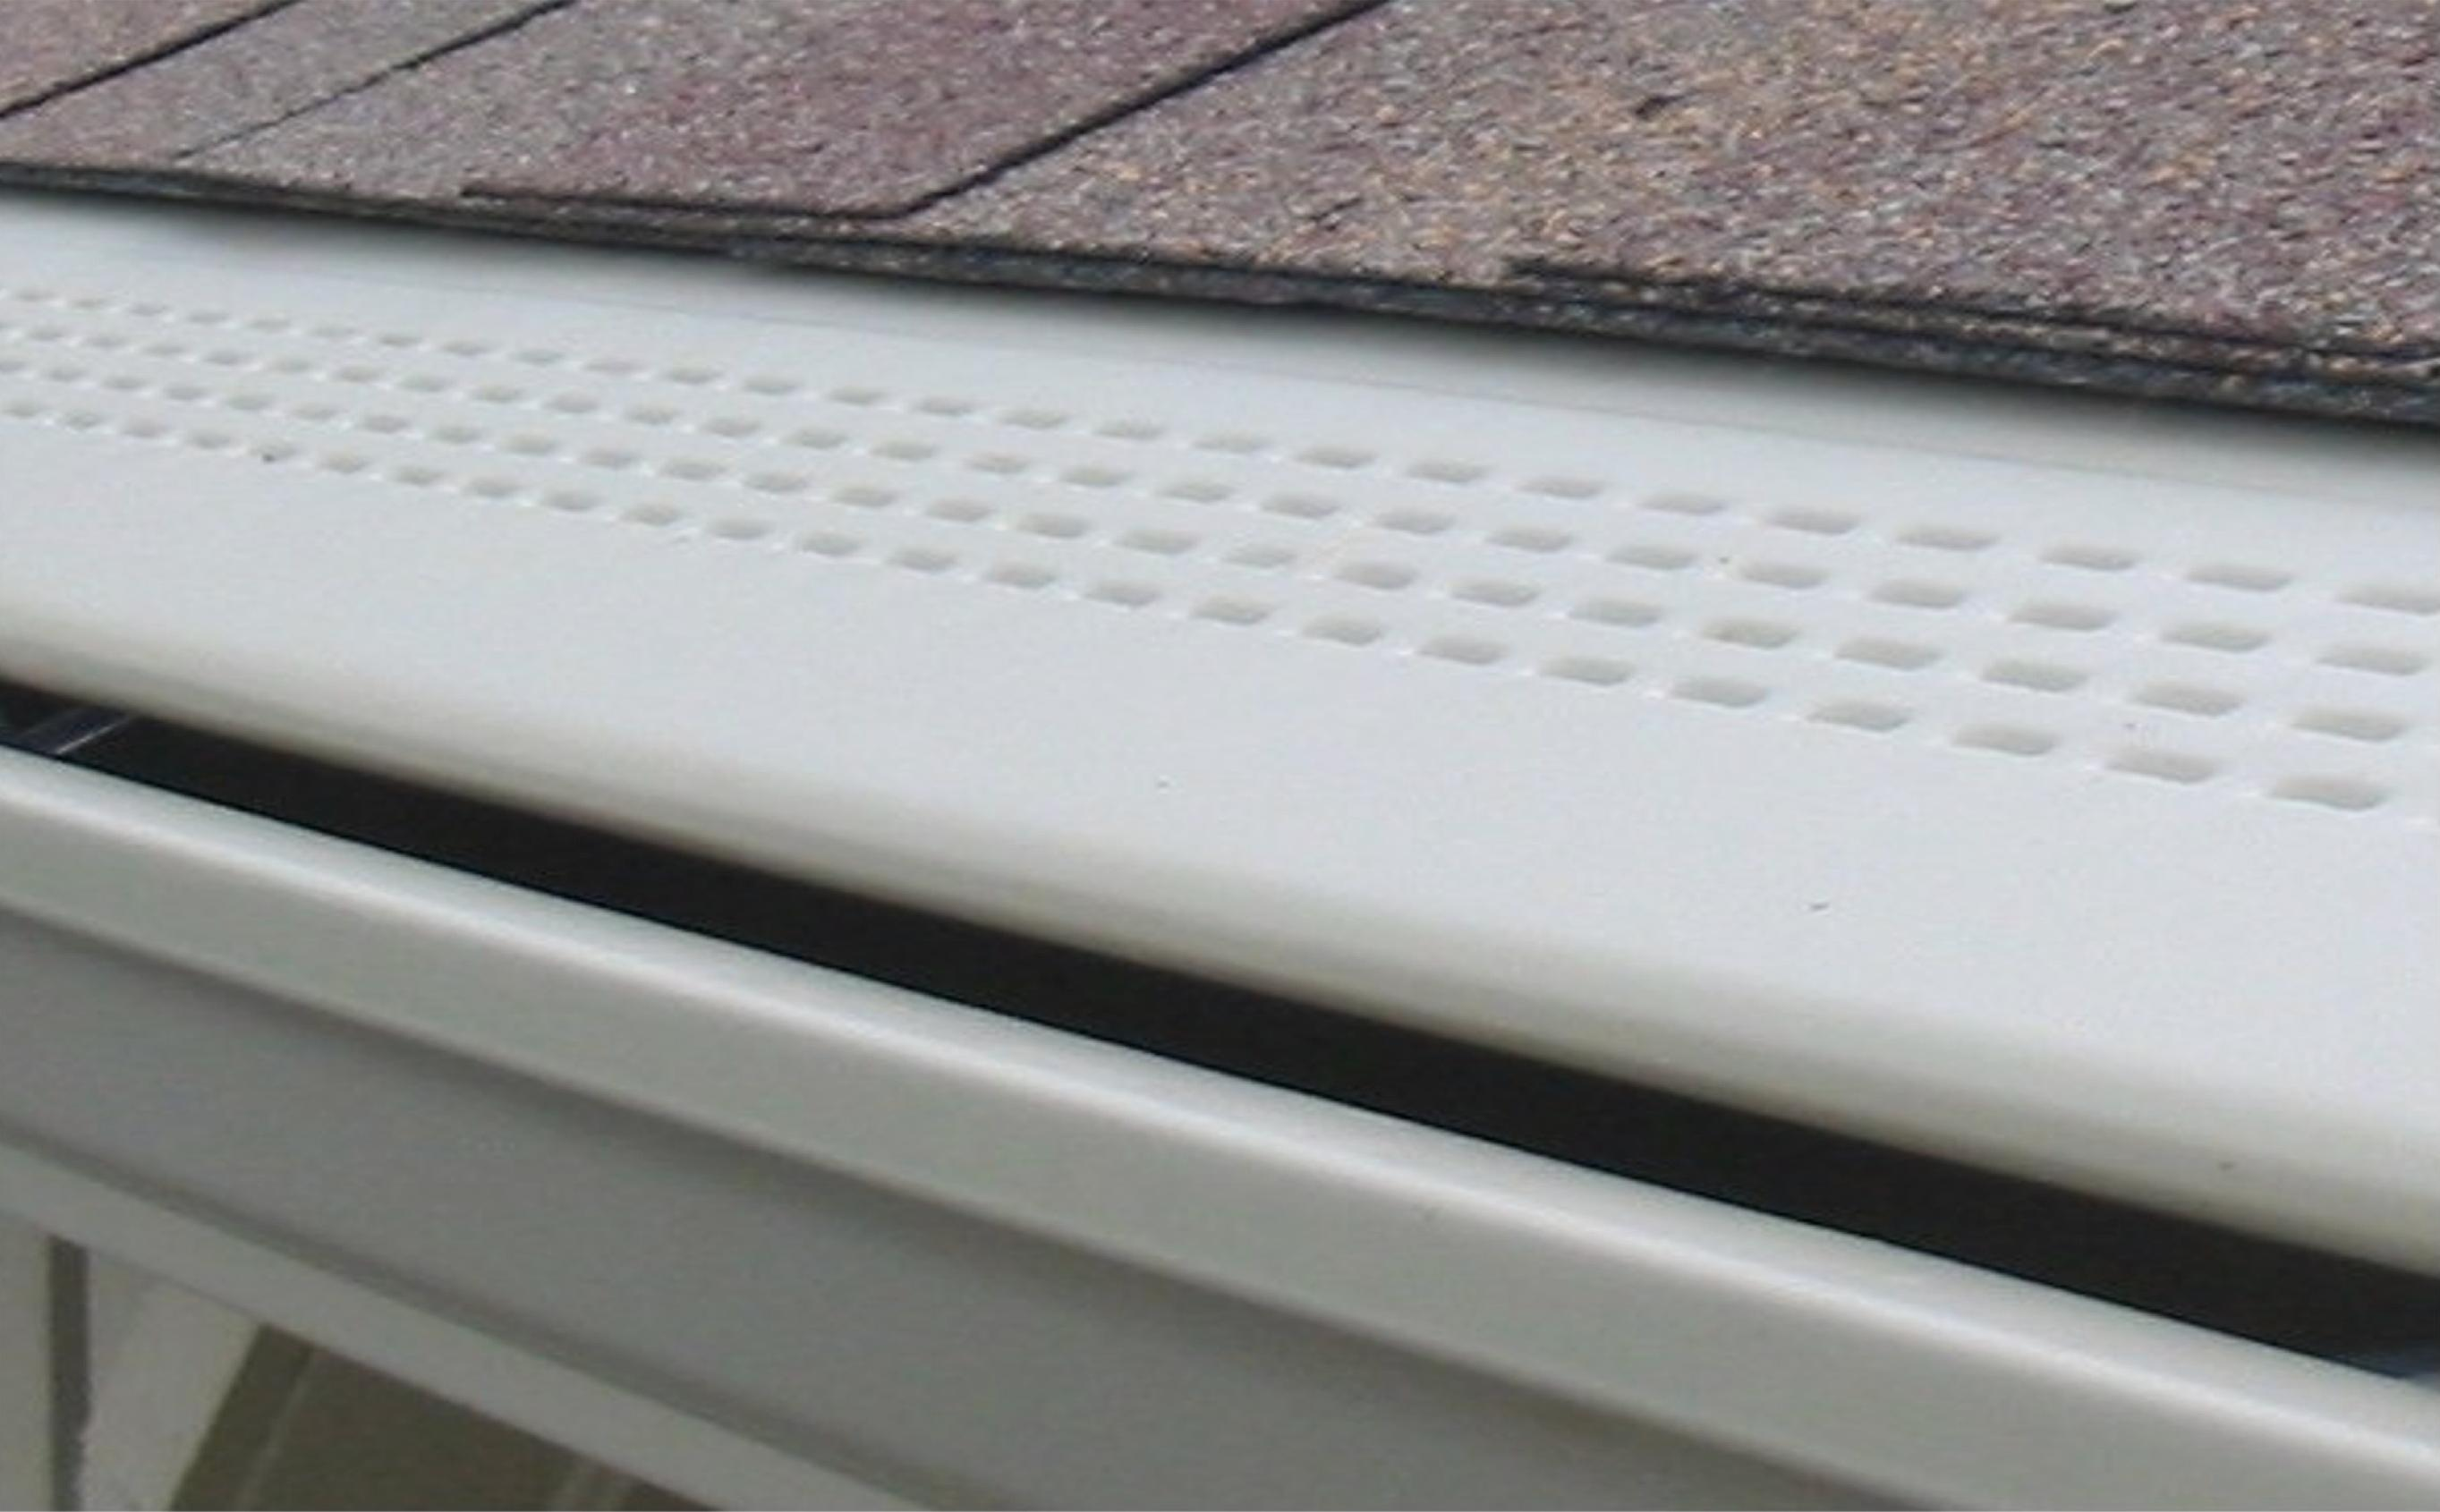 Original gutter cover warranty information original gutter cover maintains your homes curb appeal solutioingenieria Gallery